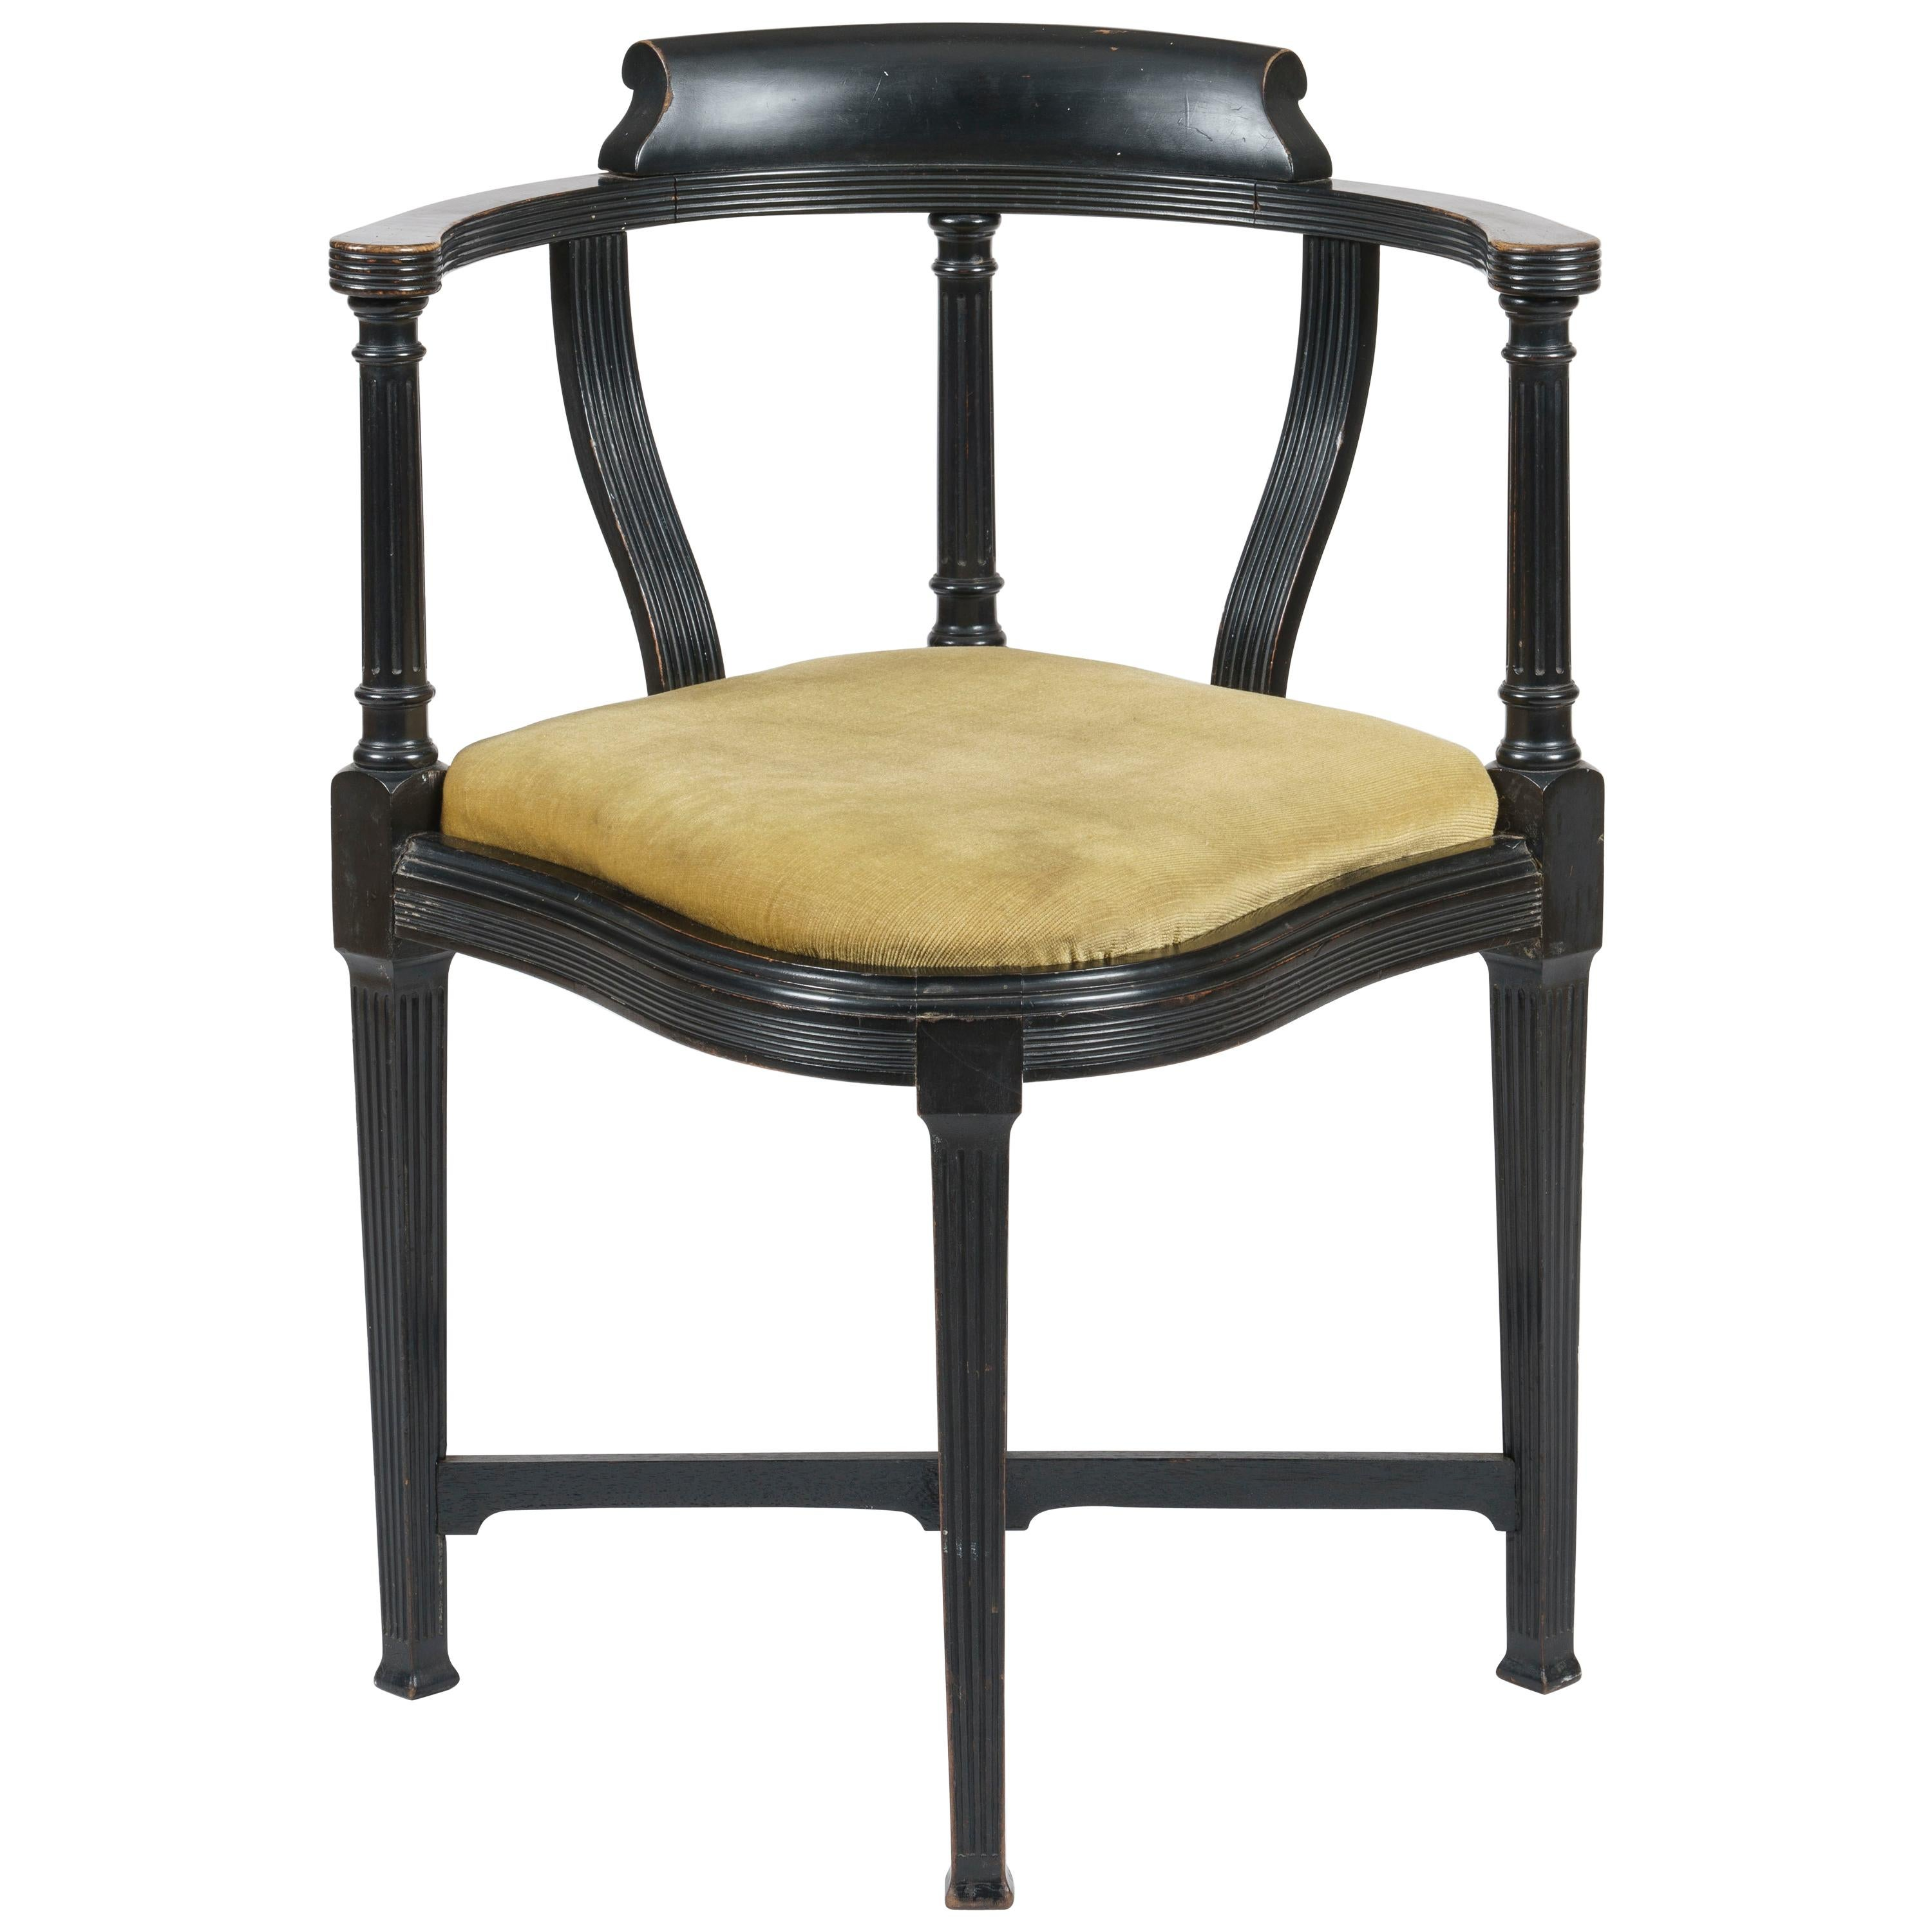 Aesthetic Movement Ebonized Chair by Lamb of Manchester designed by W.J. Estall